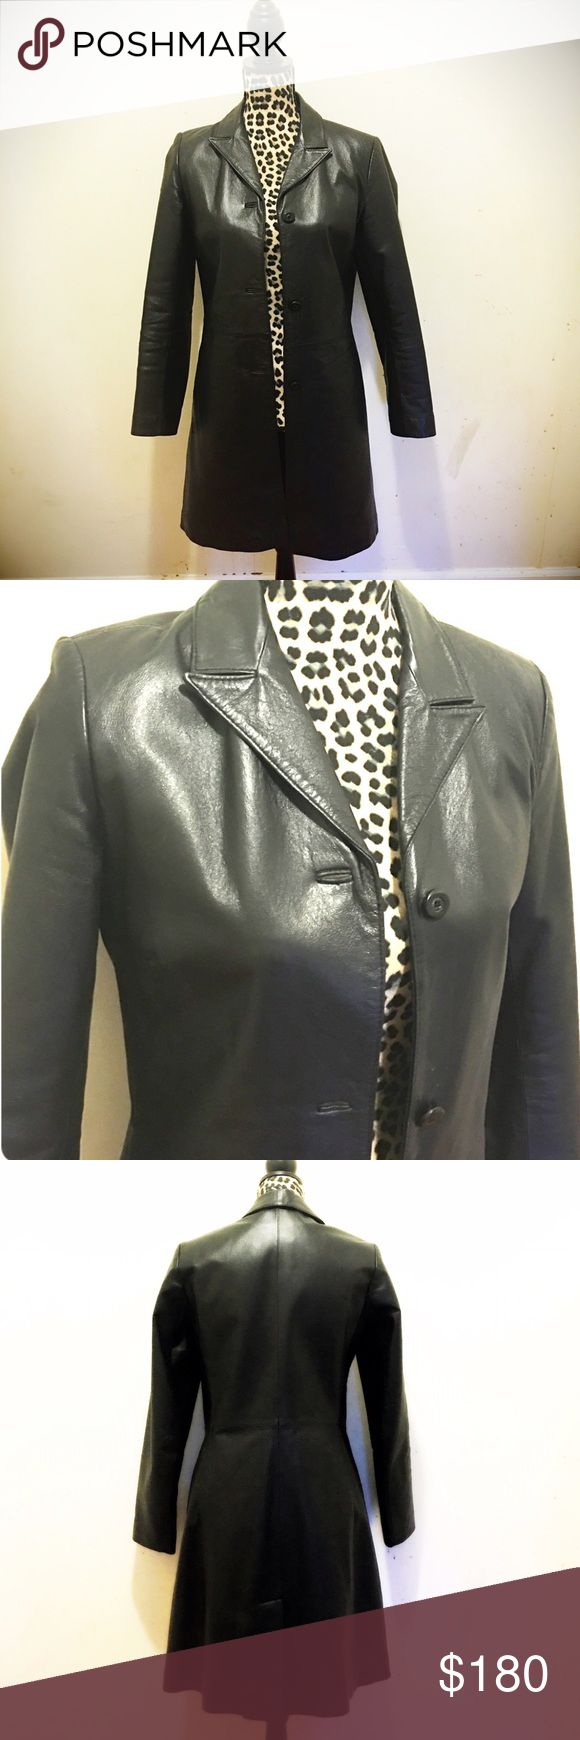 Vera Pelle real Italian leather coat. Like New! Vera Pelle real Italian leather coat. Like New! Black leather, black quilted lining, black buttons. Gorgeous collar. Size 42 (fits about a size 6/8) vera Pelle Jackets & Coats